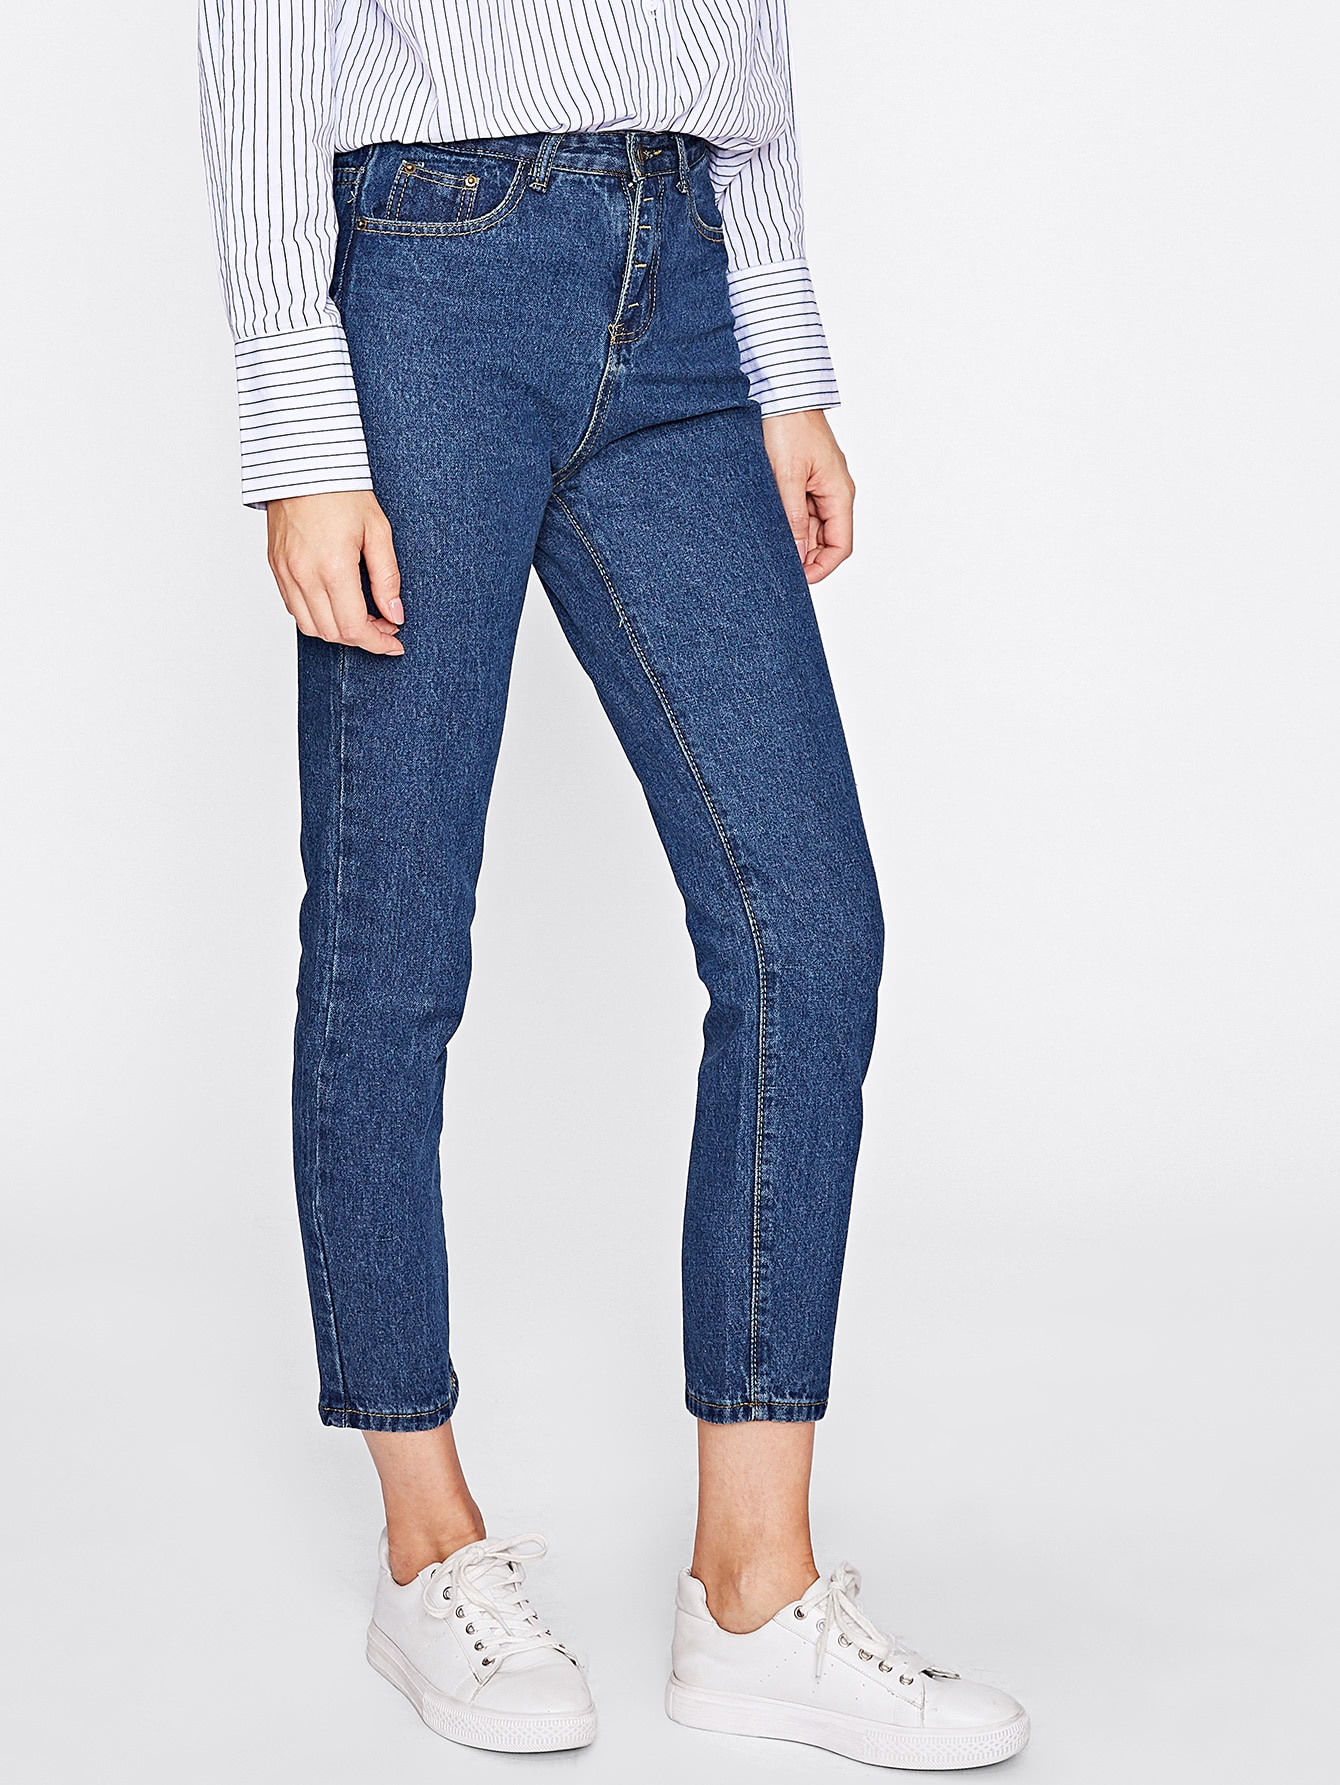 Image of Basic Ankle Jeans